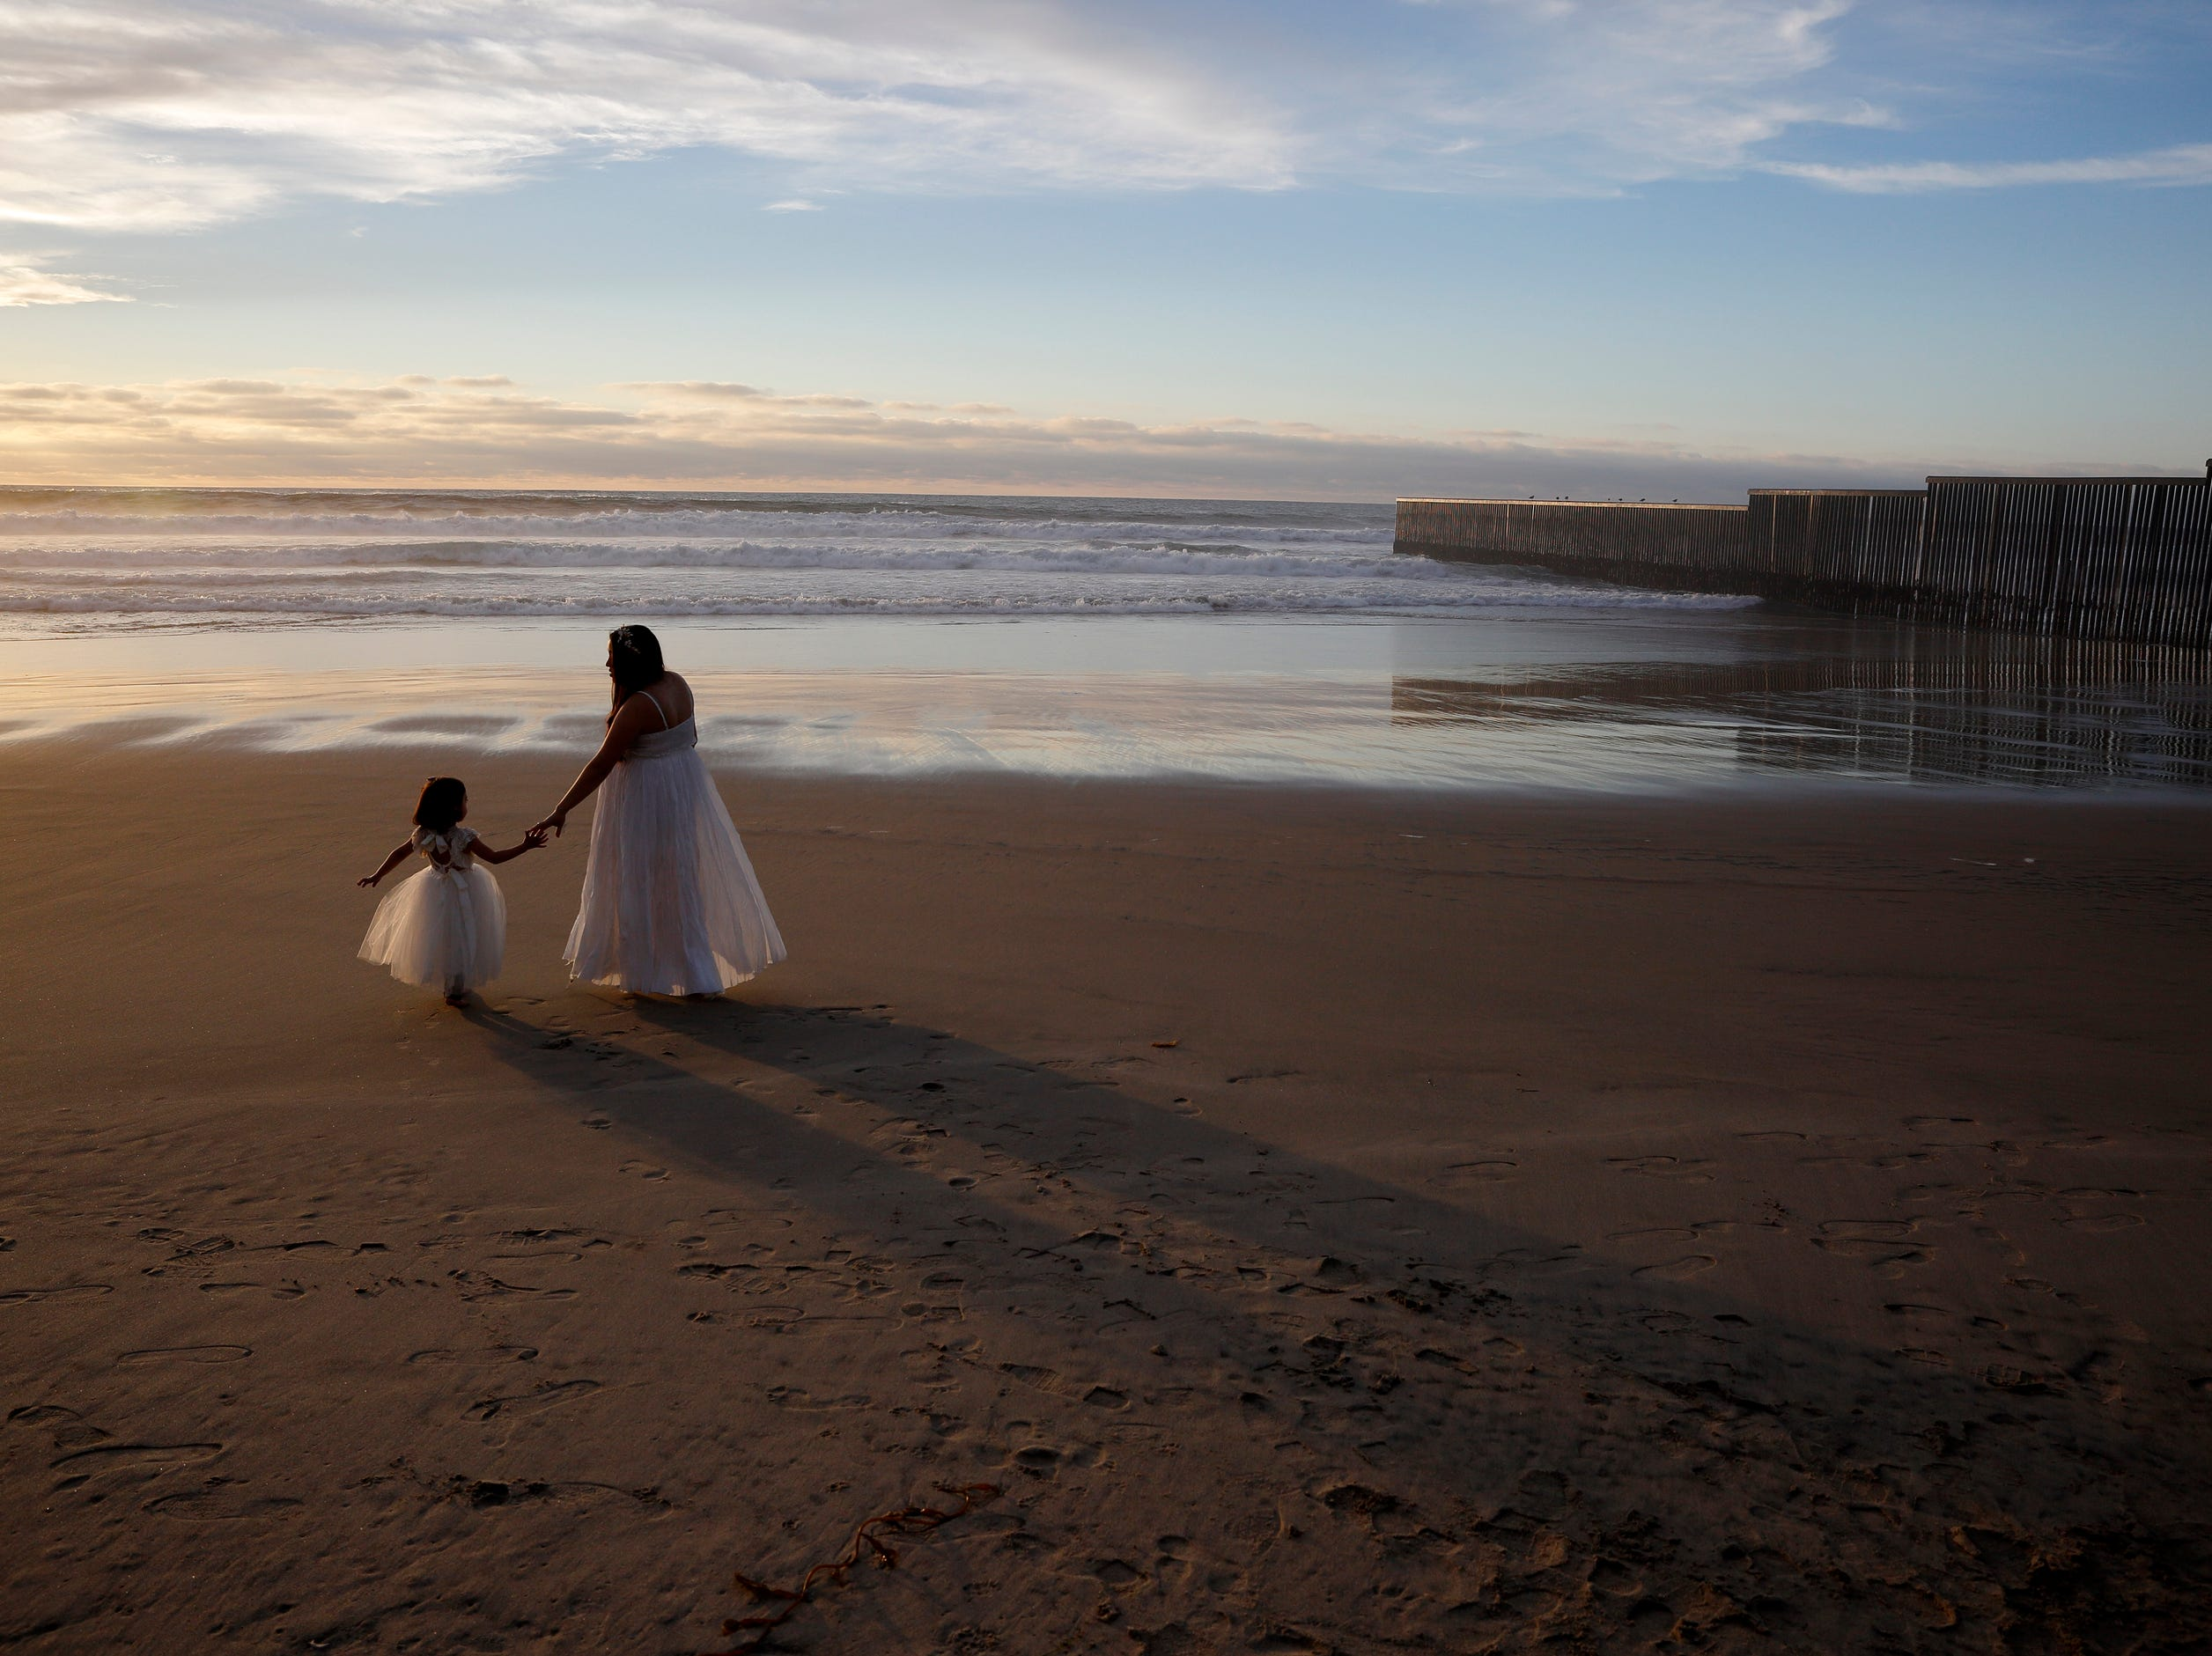 Ileze Dariel, of Tijuana, Mexico, reaches for the hand of her daughter, Jimena, as they wait for a photographer on the beach next to the border wall, right, Wednesday, Jan. 9, 2019, in Tijuana, Mexico.